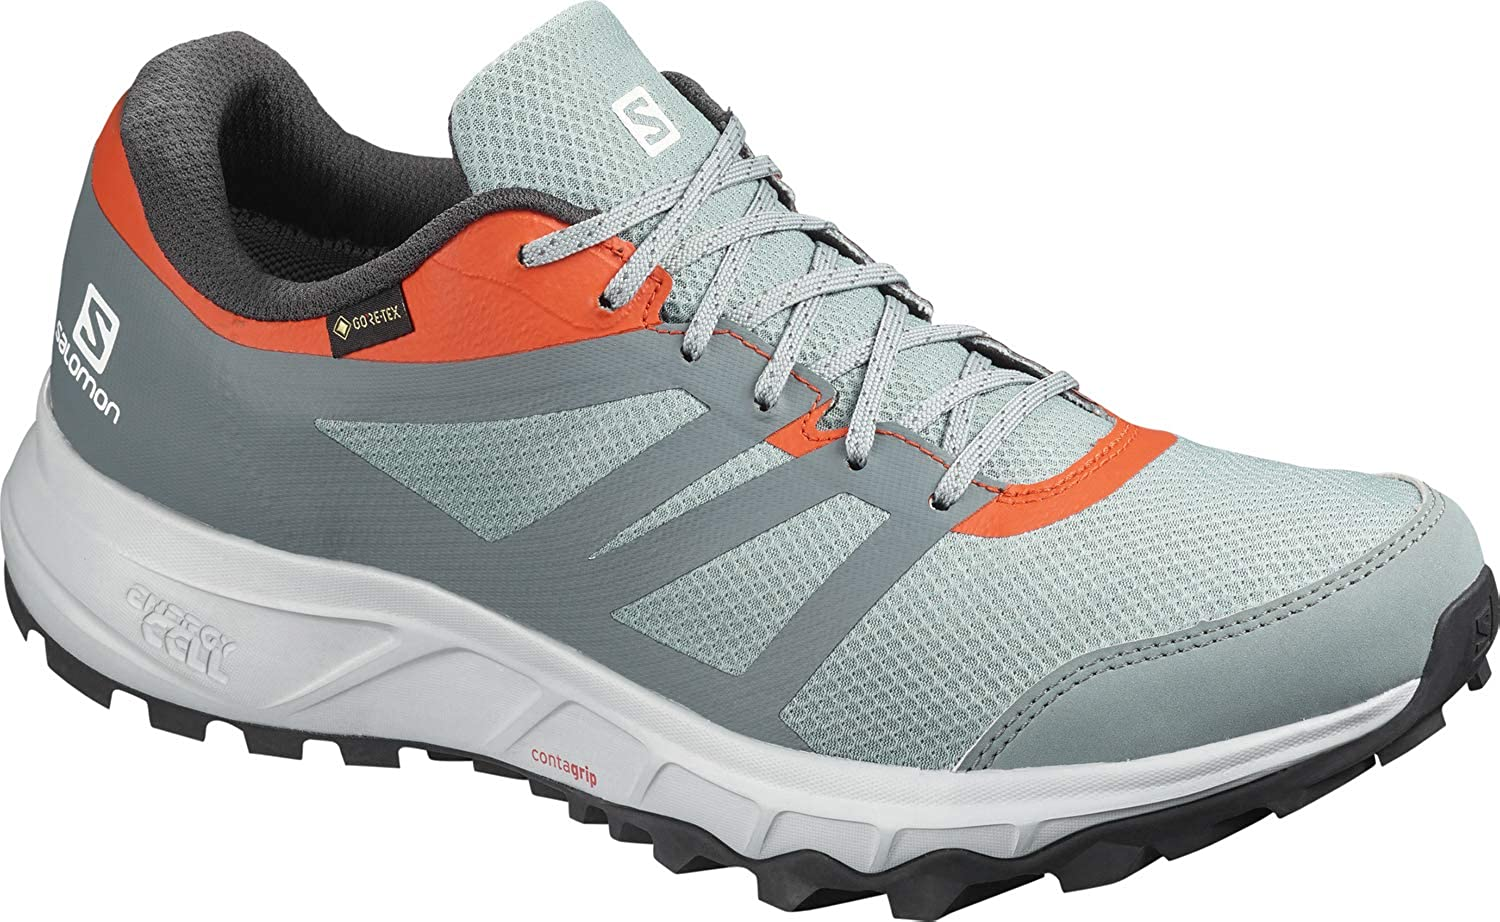 Salomon Trailster 2 GTX, Zapatillas de Trail Running para Hombre: Amazon.es: Zapatos y complementos